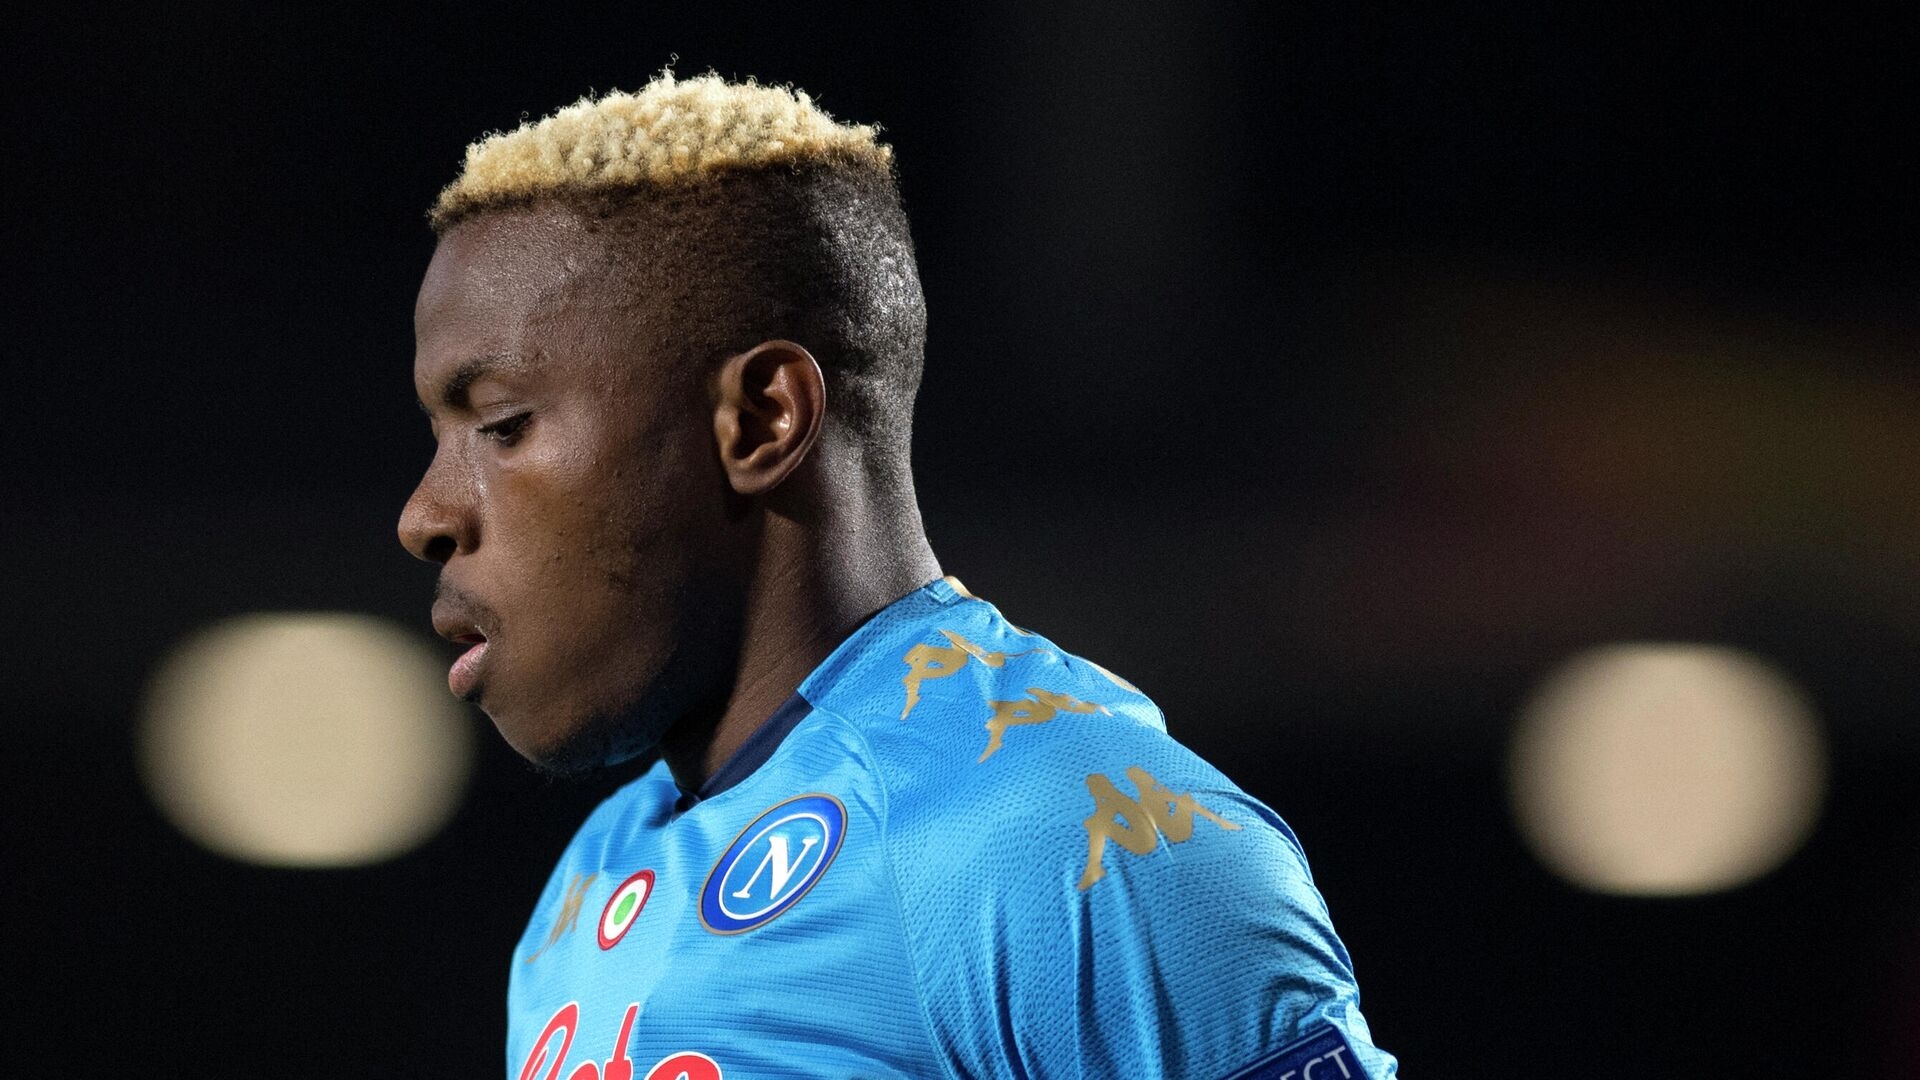 Napoli's Nigerian forward Victor Osimhen reacts during the UEFA Europa League round of 32 first leg football match between Granada FC and Napoli at Nuevo Los Carmenes stadium in Granada on February 18, 2021. (Photo by JORGE GUERRERO / AFP) - РИА Новости, 1920, 22.02.2021